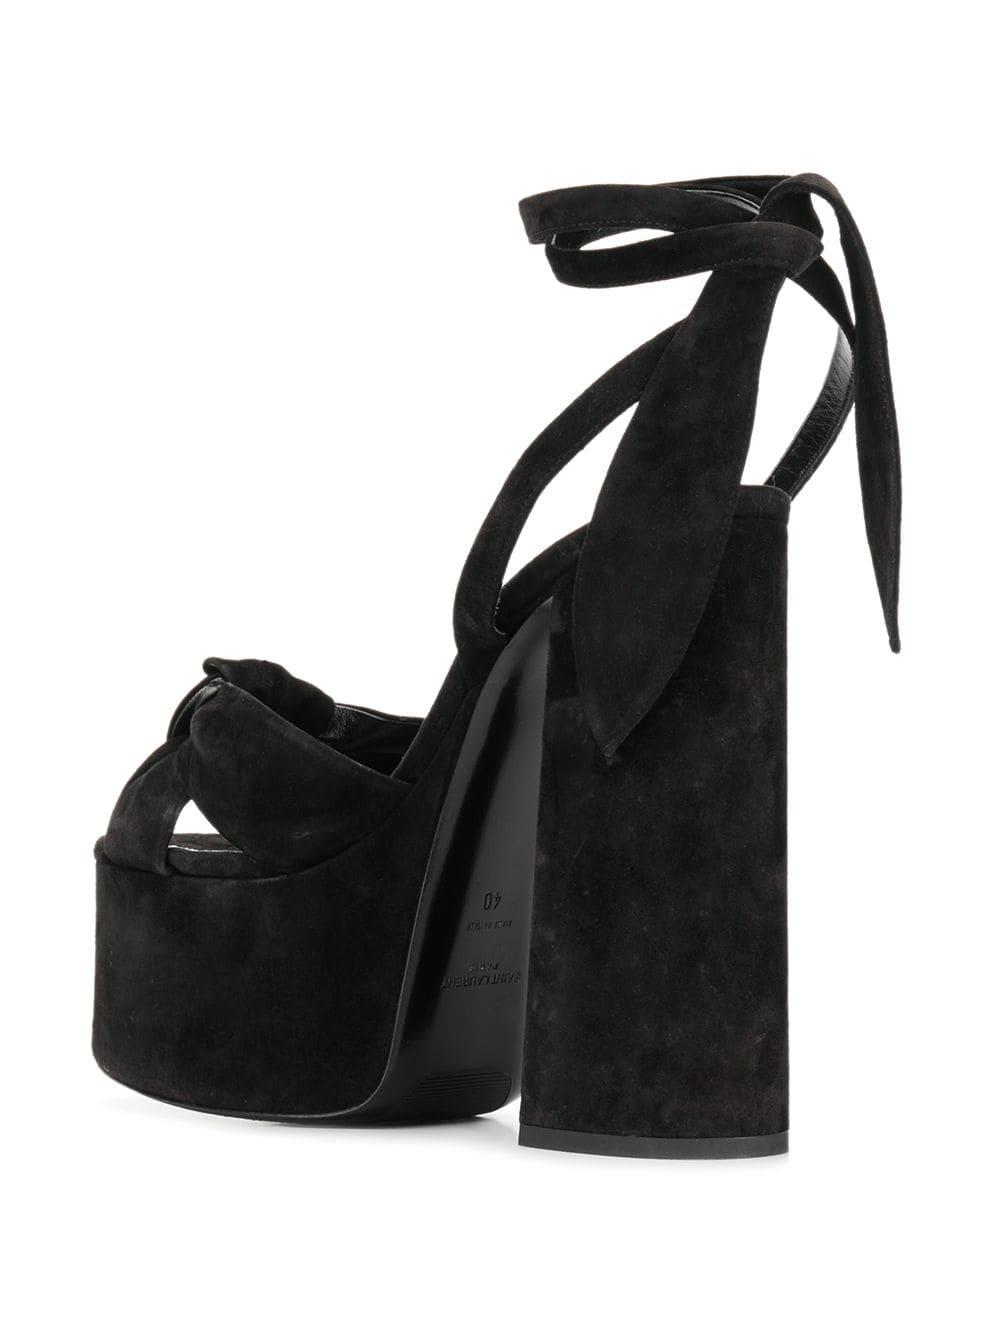 c343e87c10f2 Saint Laurent - Black Paige High Platform Sandals - Lyst. View fullscreen